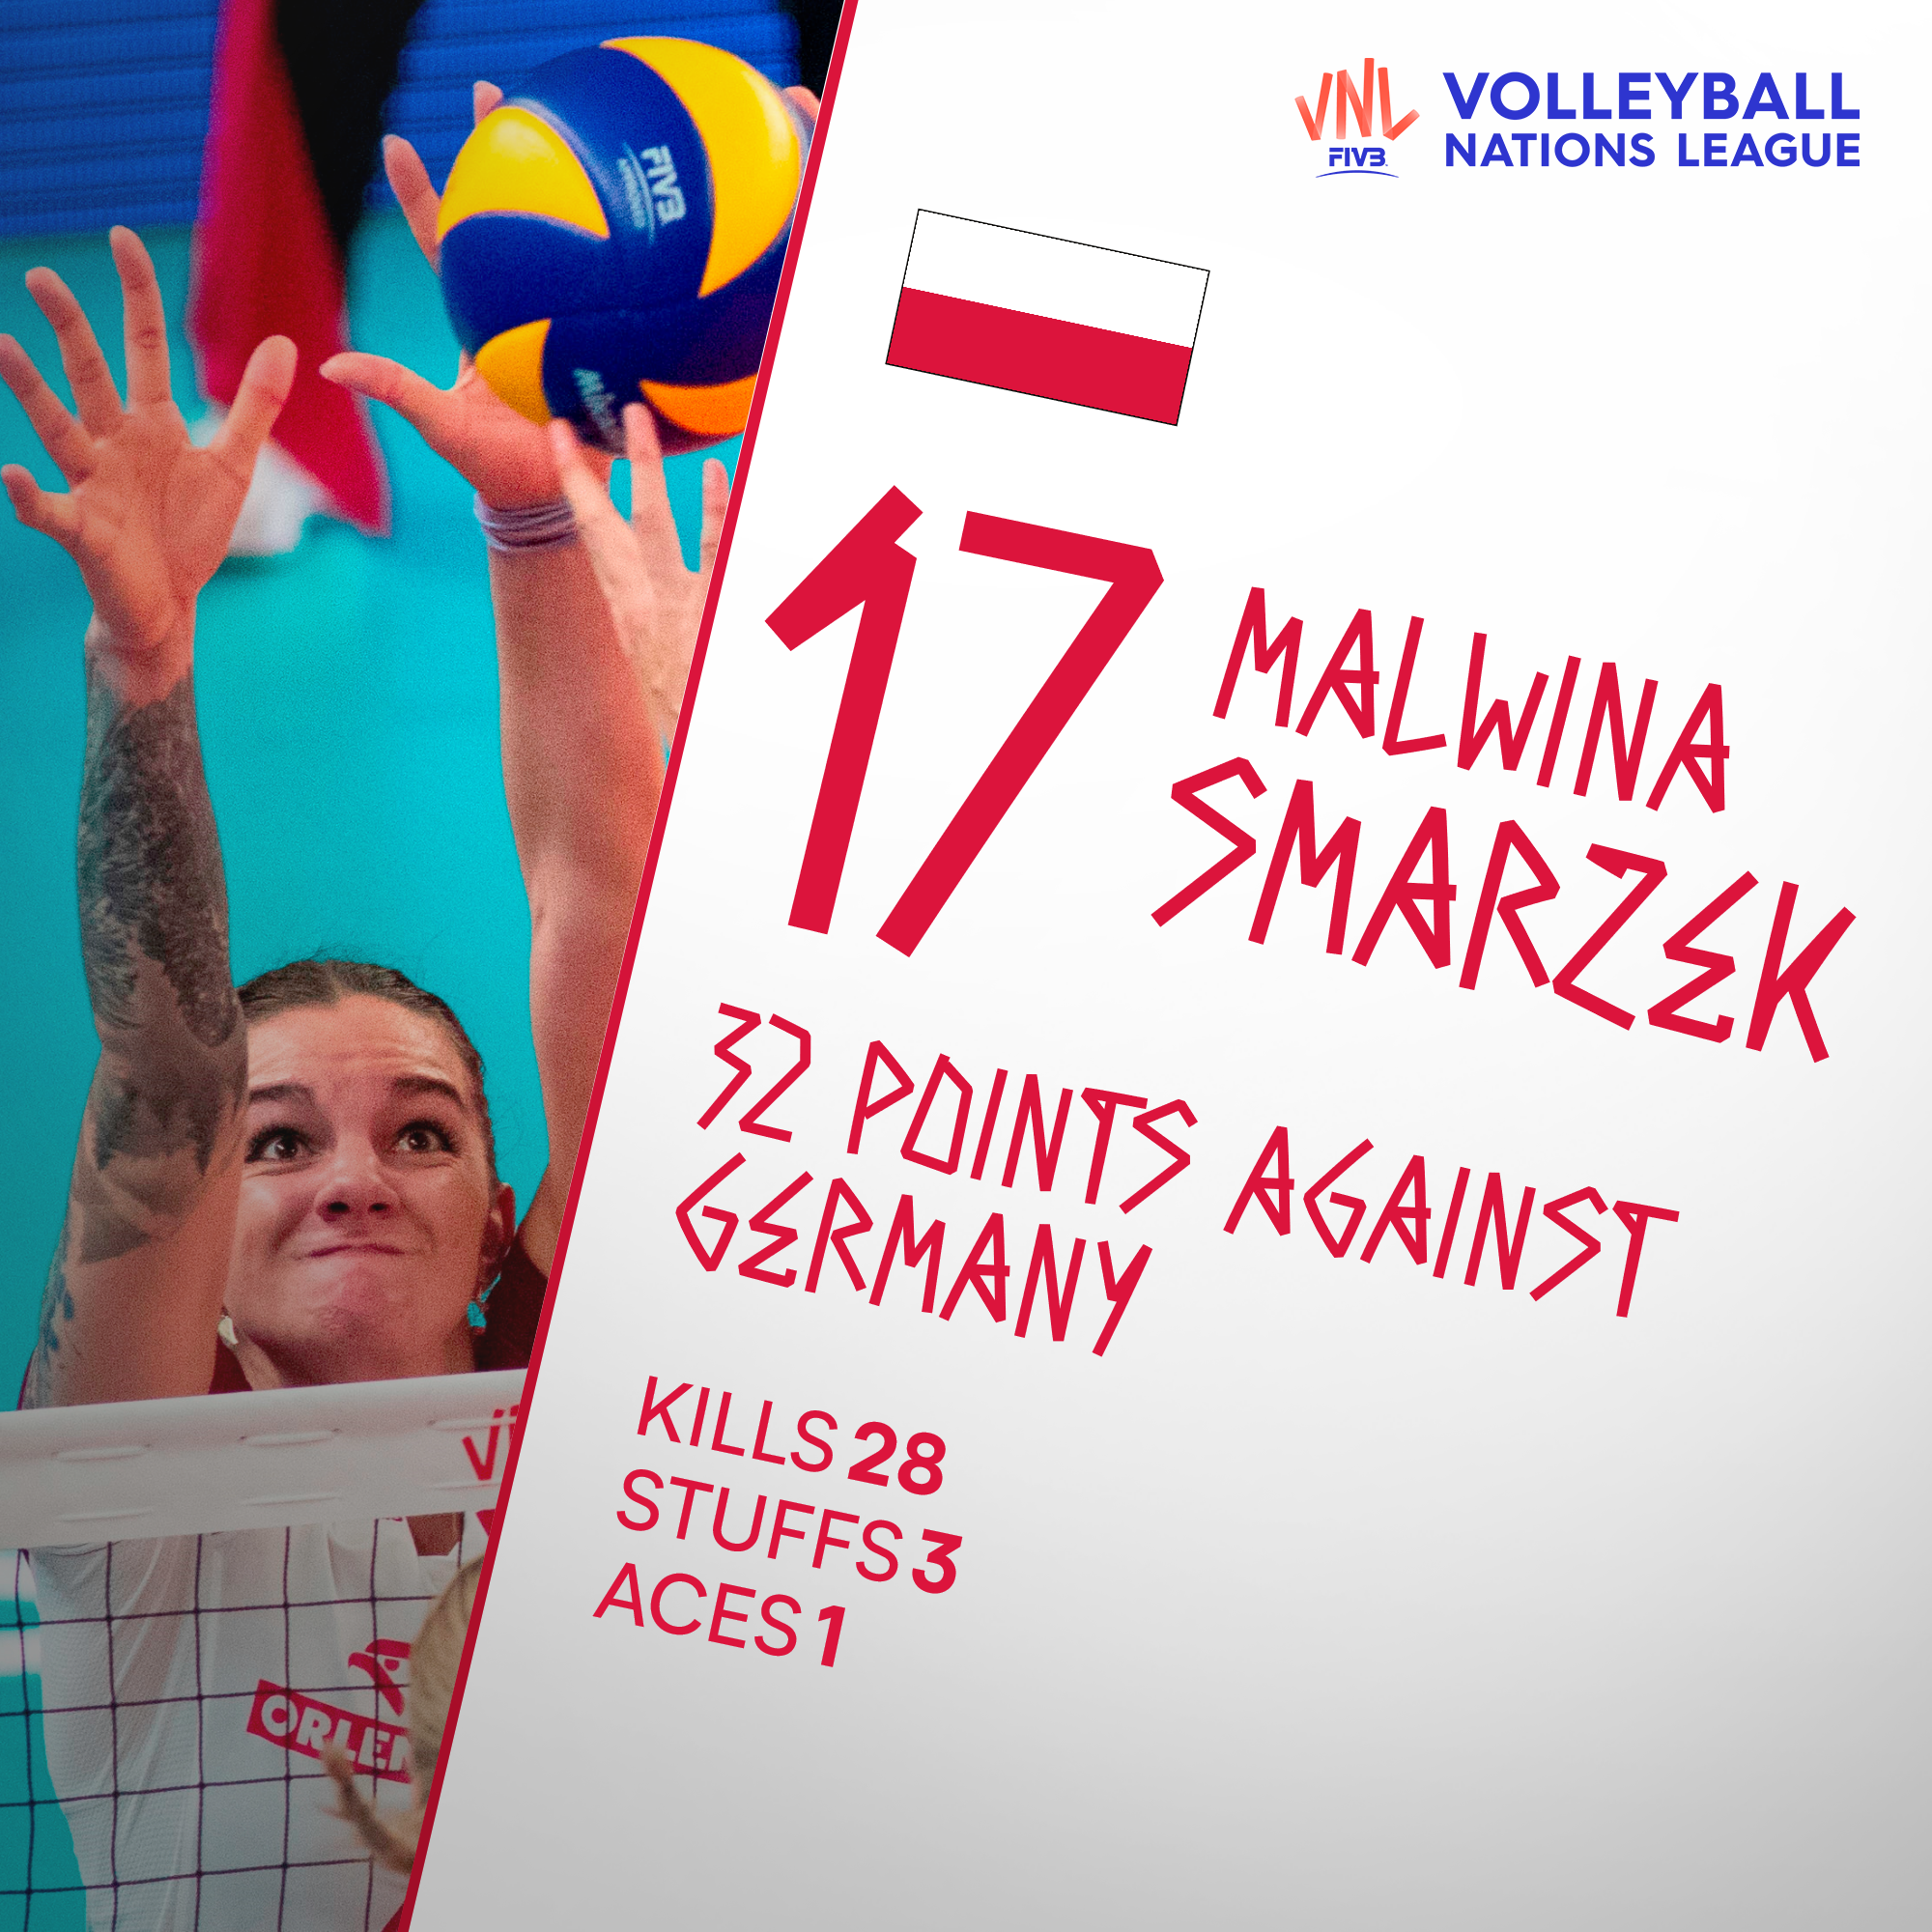 VNL2019 - News detail - Smarzek makes new entry in exclusive scorers 'club' - FIVB Volleyball Nations League 2019